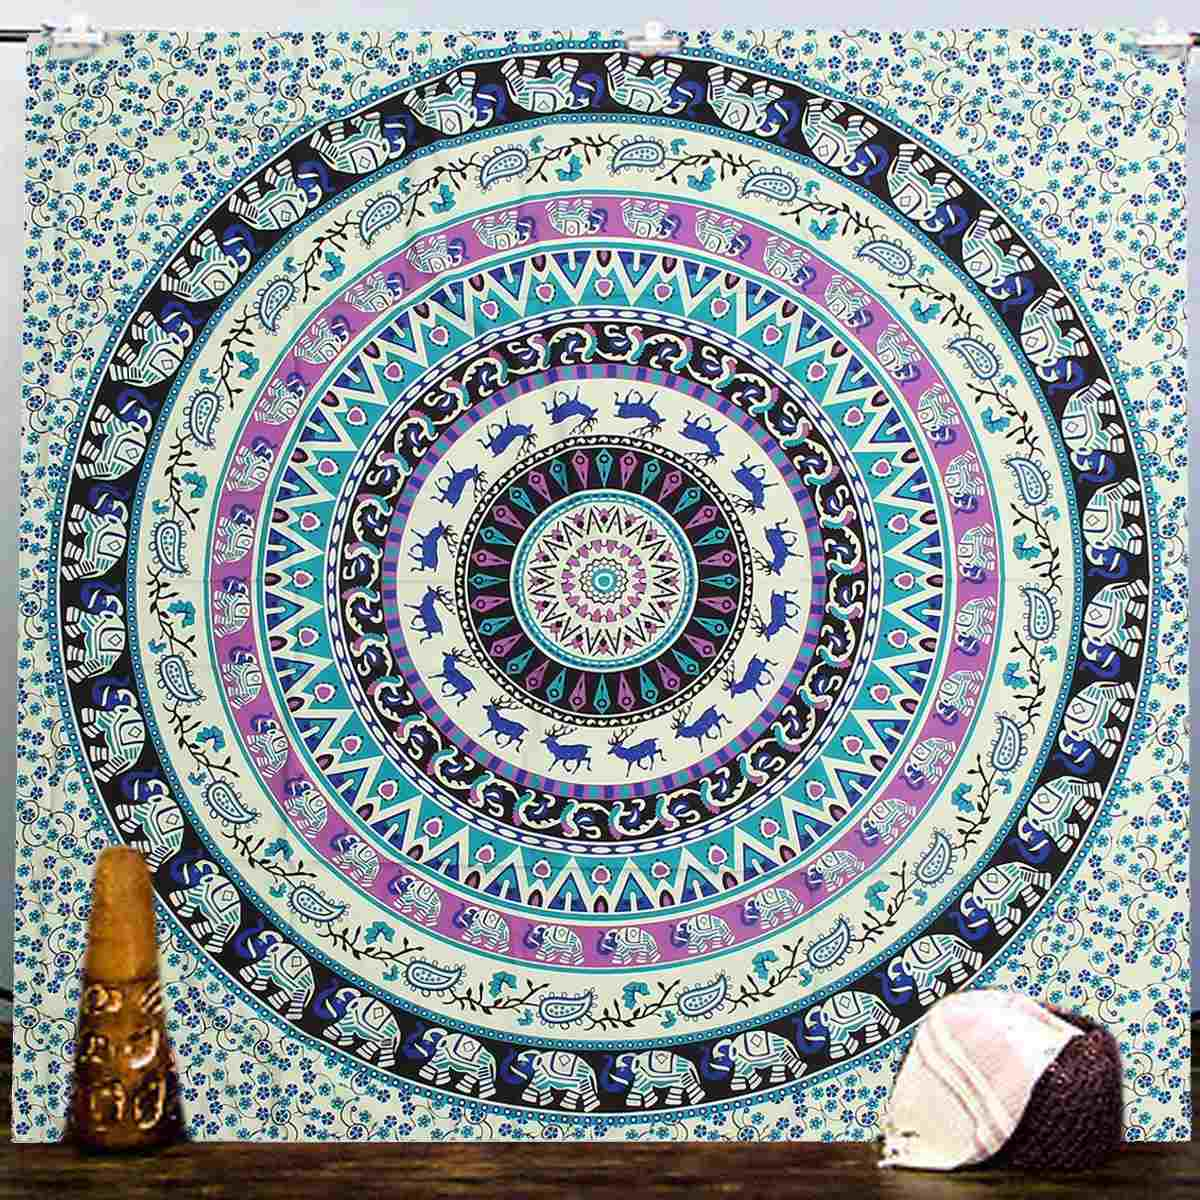 Indian table decorations - Beach Towel Wall Hanging Tapestries Indian Mandala Tapestry Boho Bedspread Yoga Mat Blanket Table Cloth Home Decoration